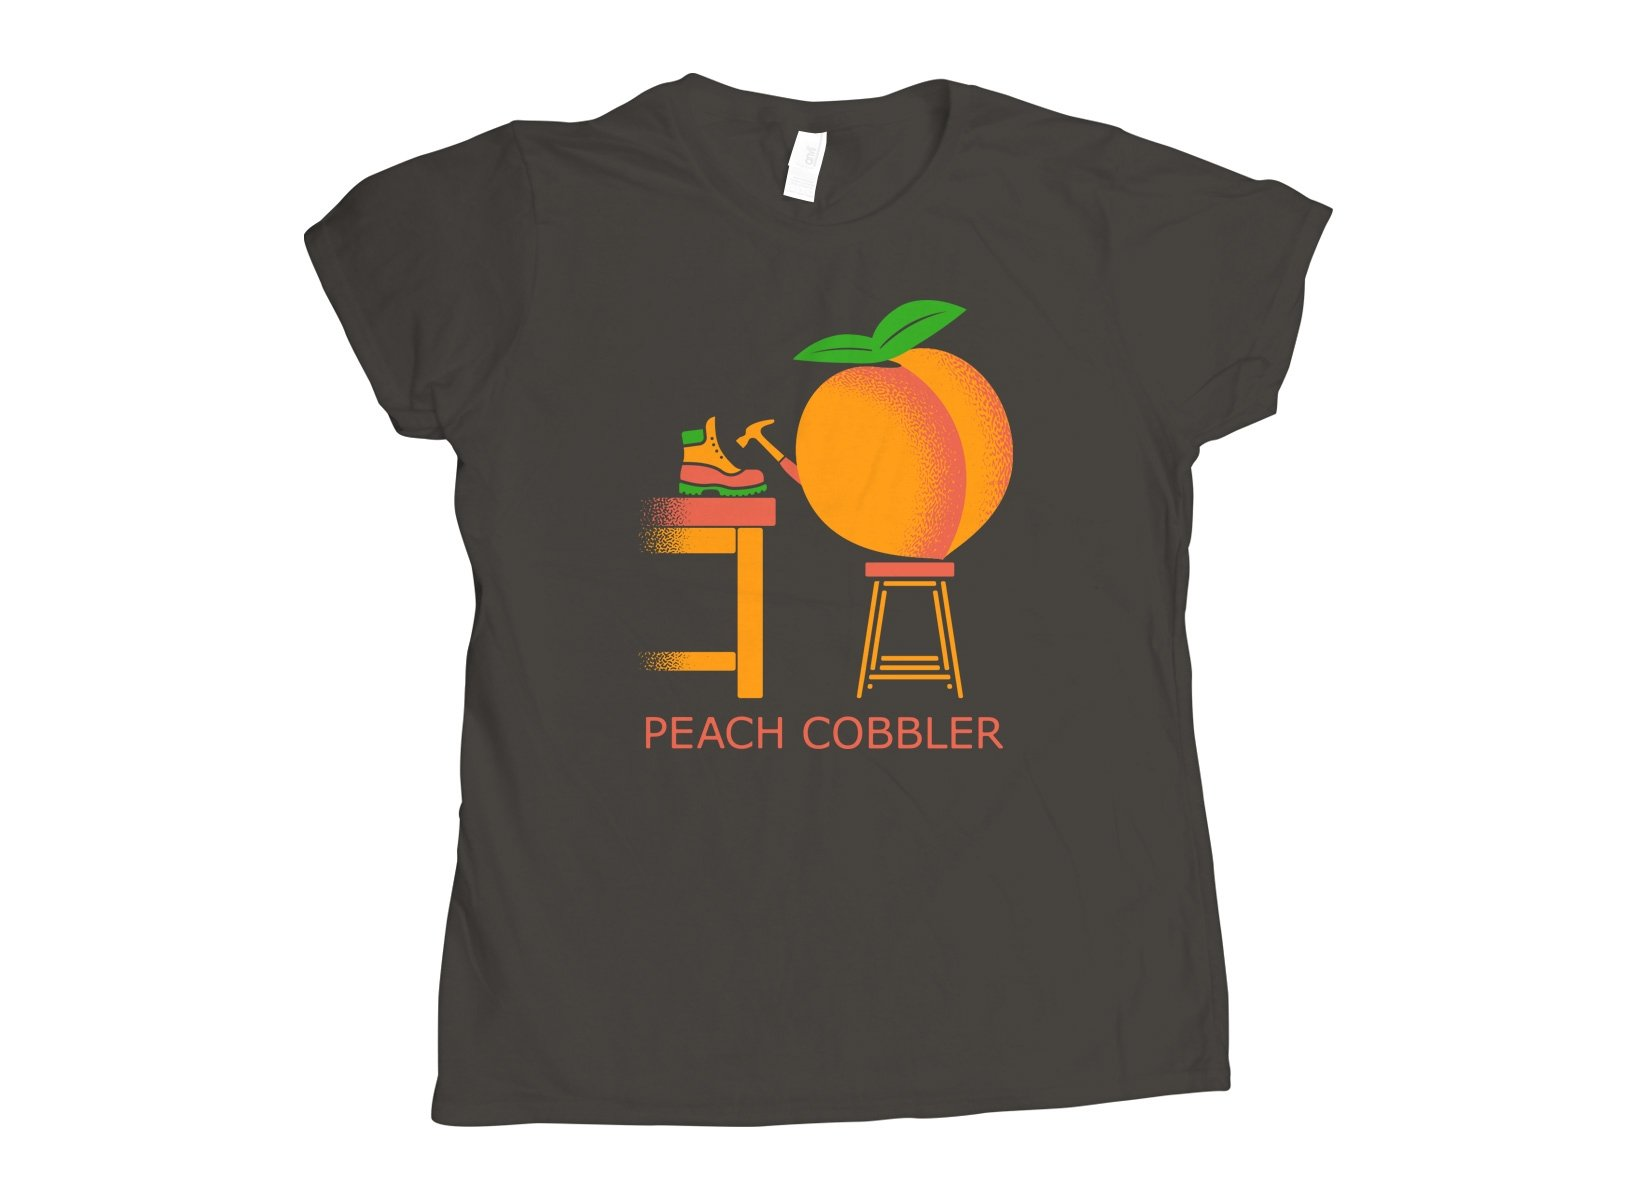 Peach Cobbler on Womens T-Shirt